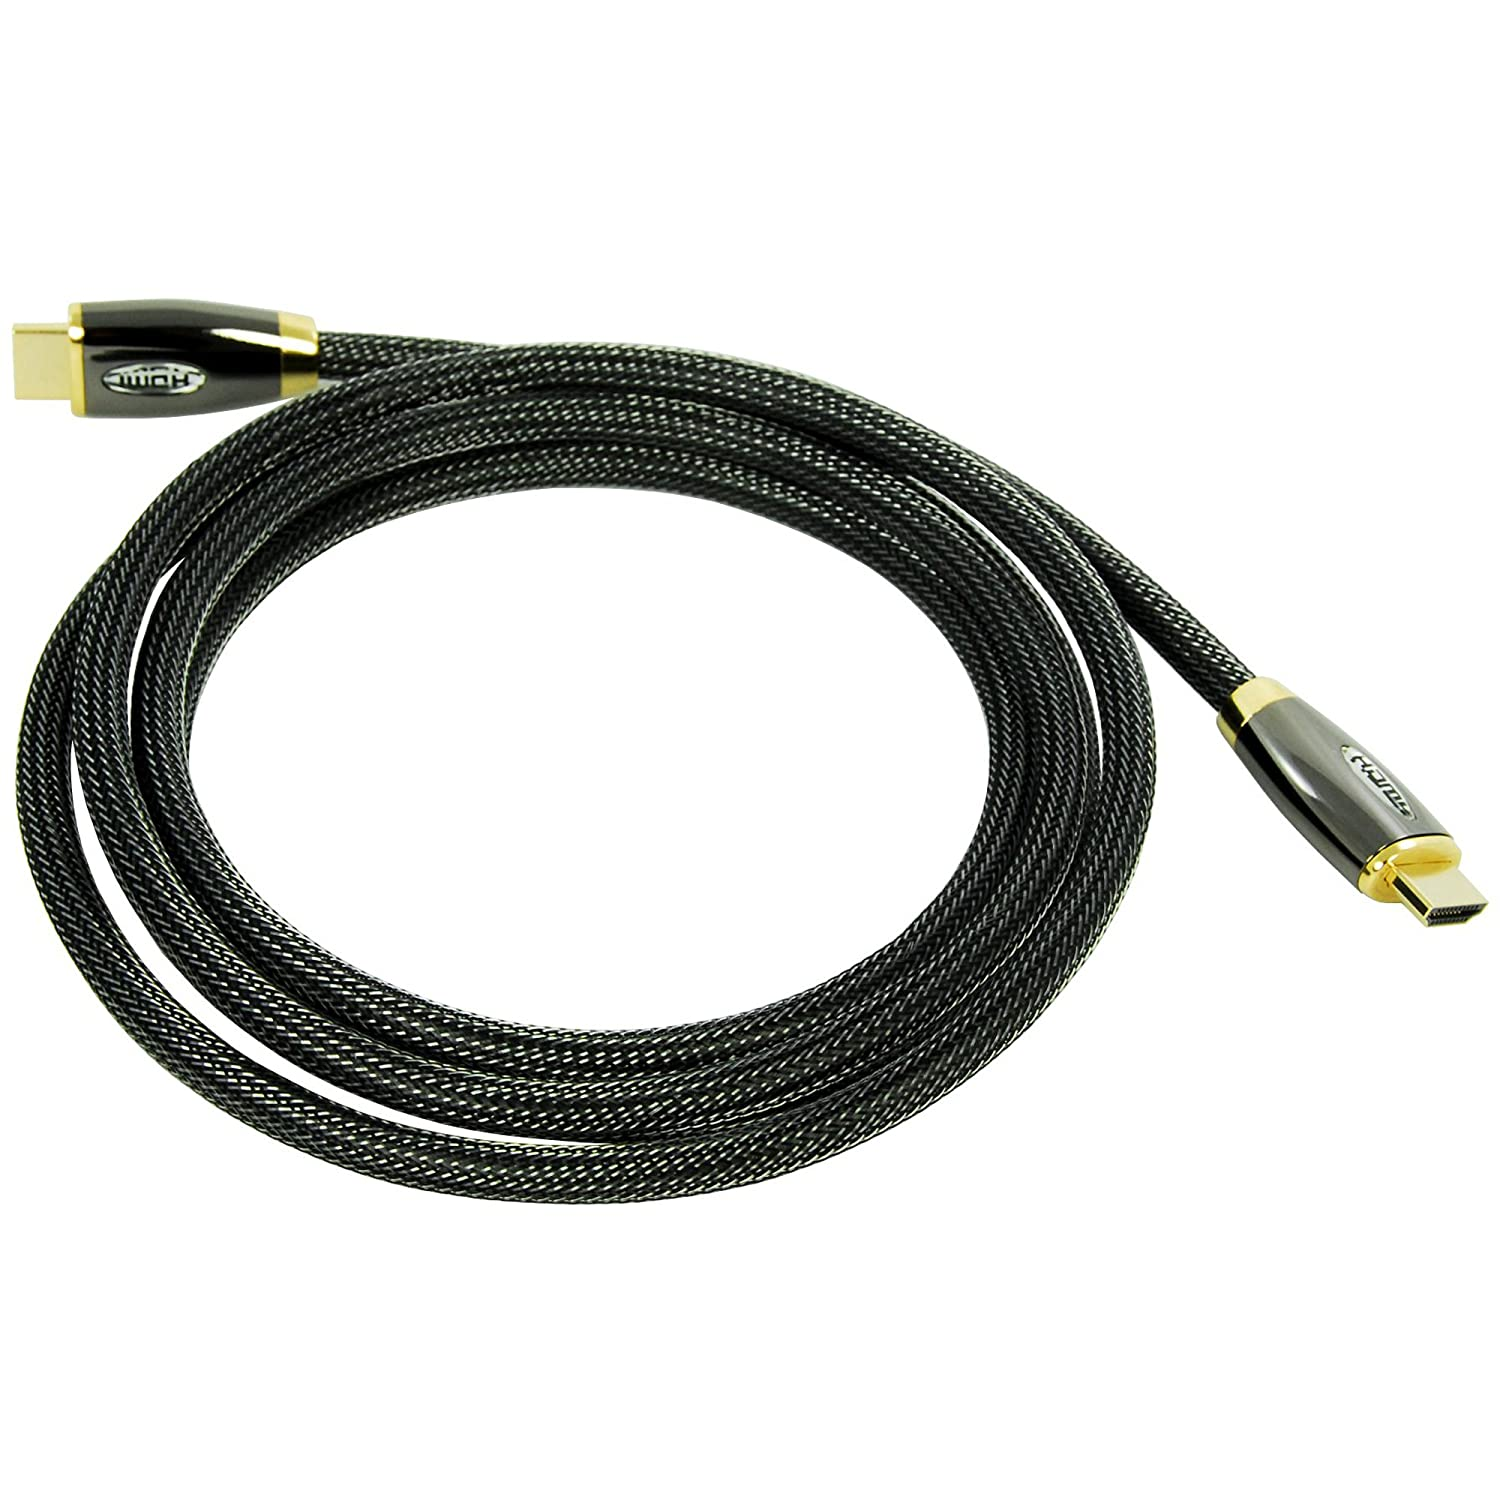 Leicke KN39789 KanaaN High Speed HDMI Kabel: Amazon.de: Elektronik